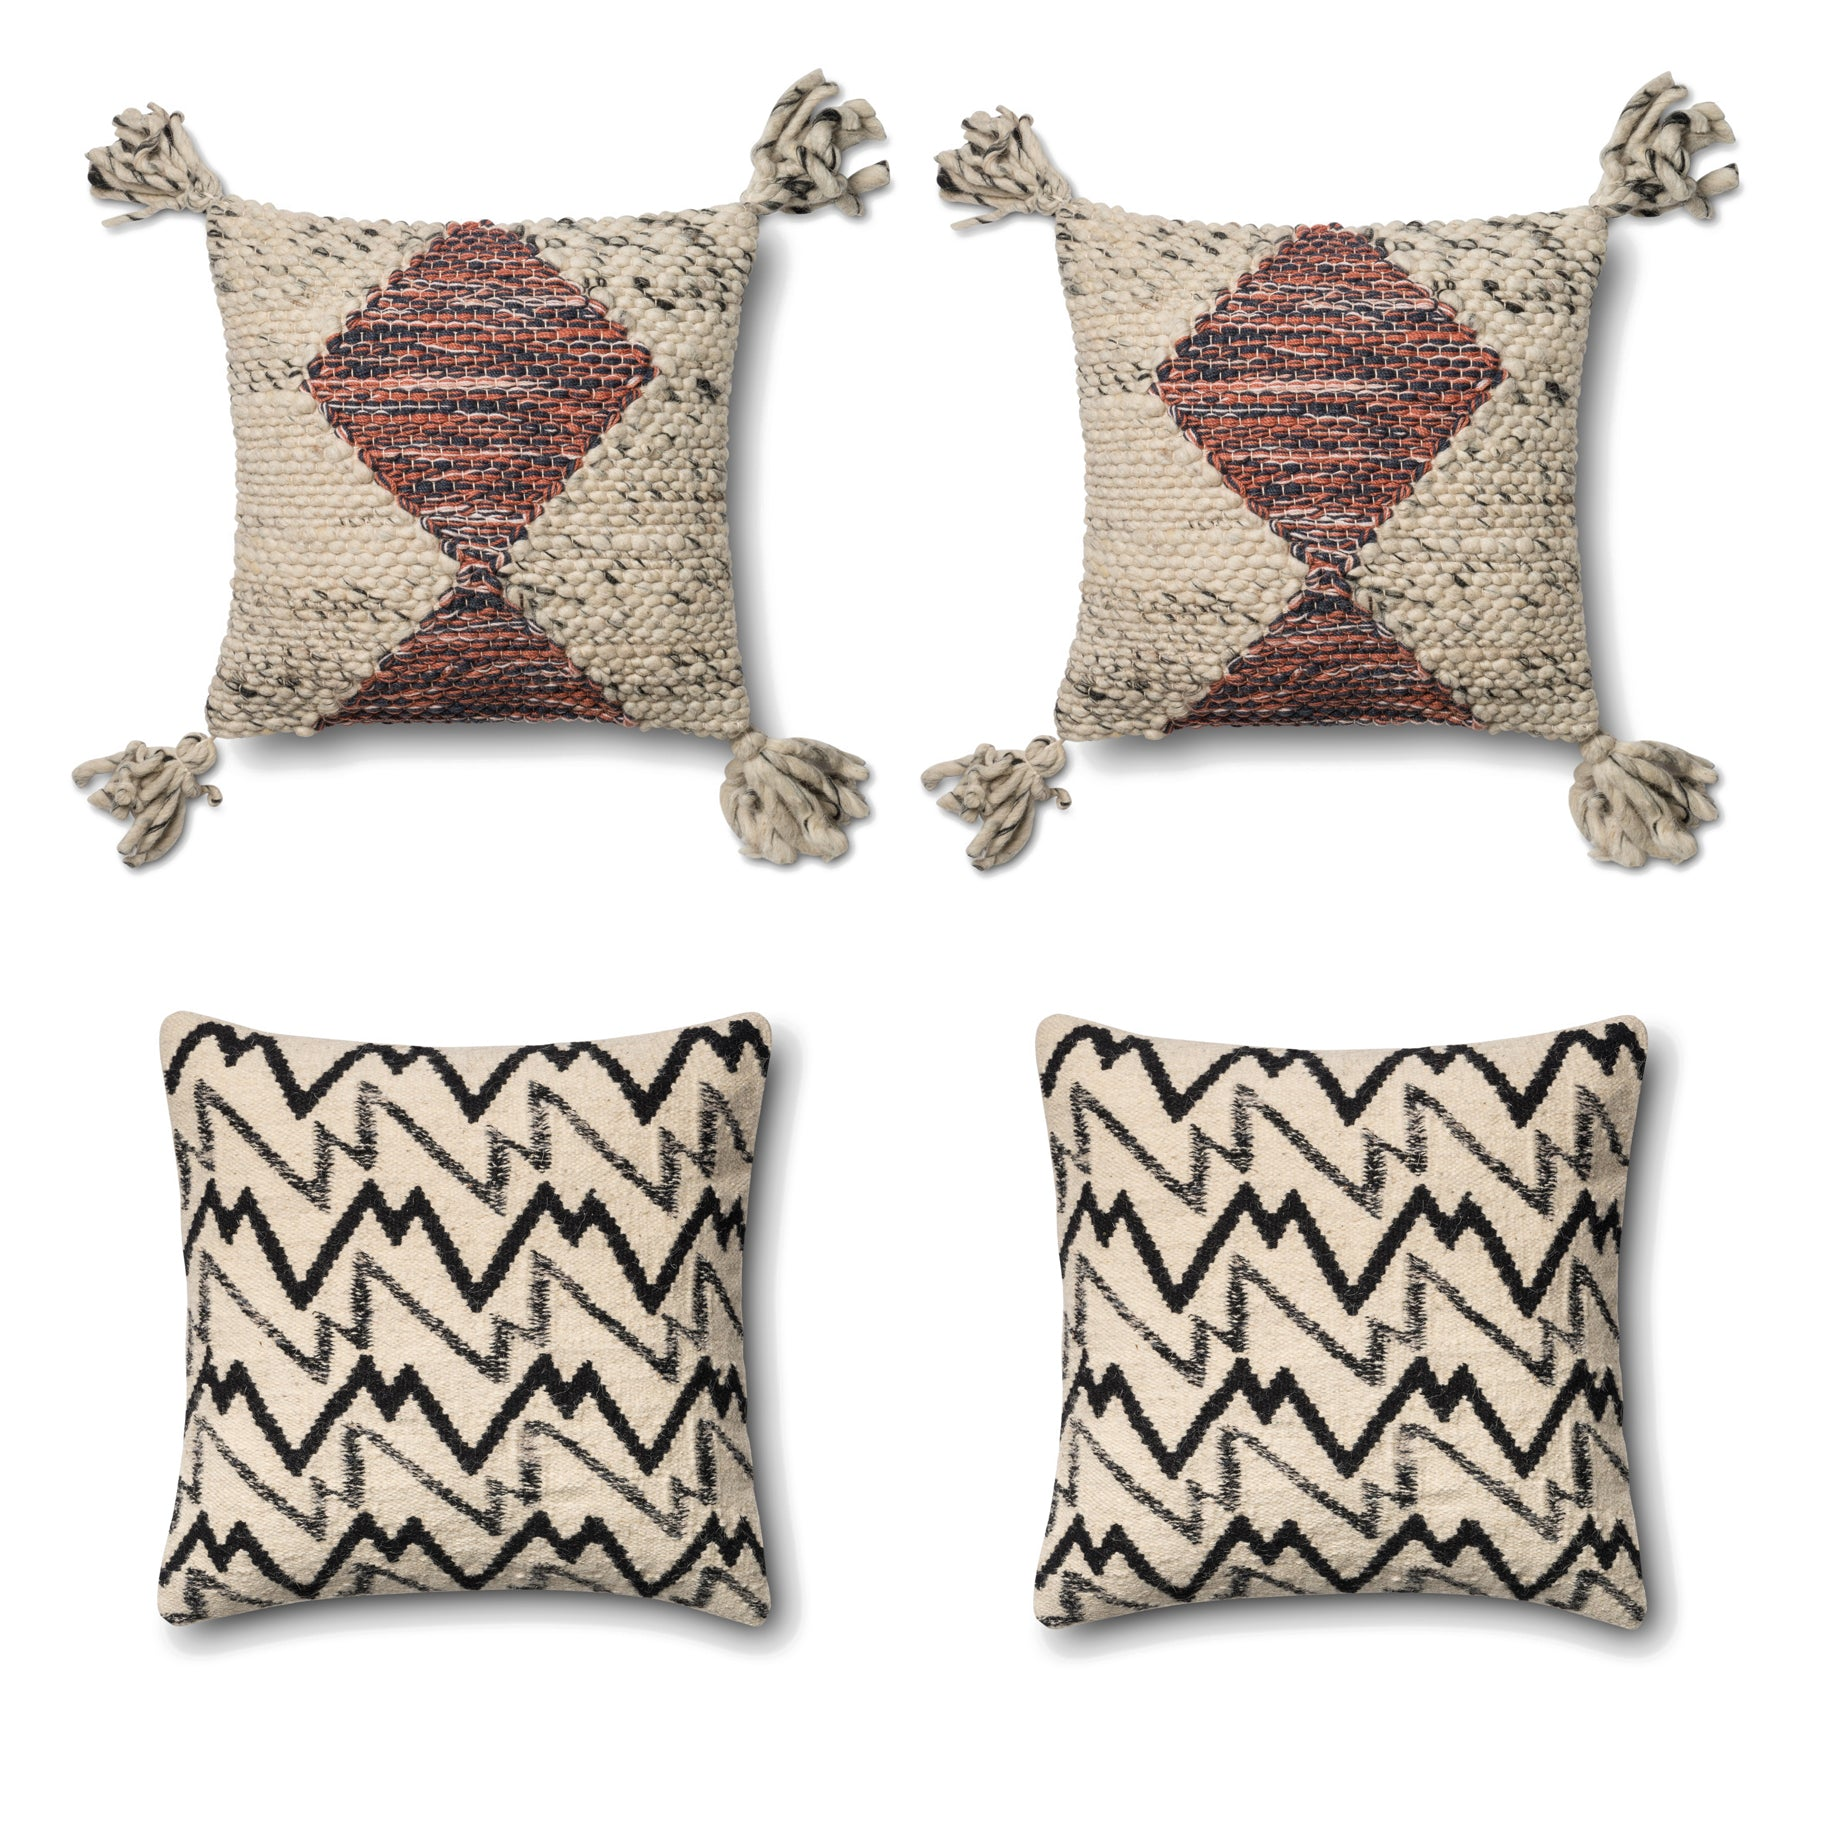 throw the collections woven products pillow market chiapas luchometik shop fair leaderboard pillows little trade